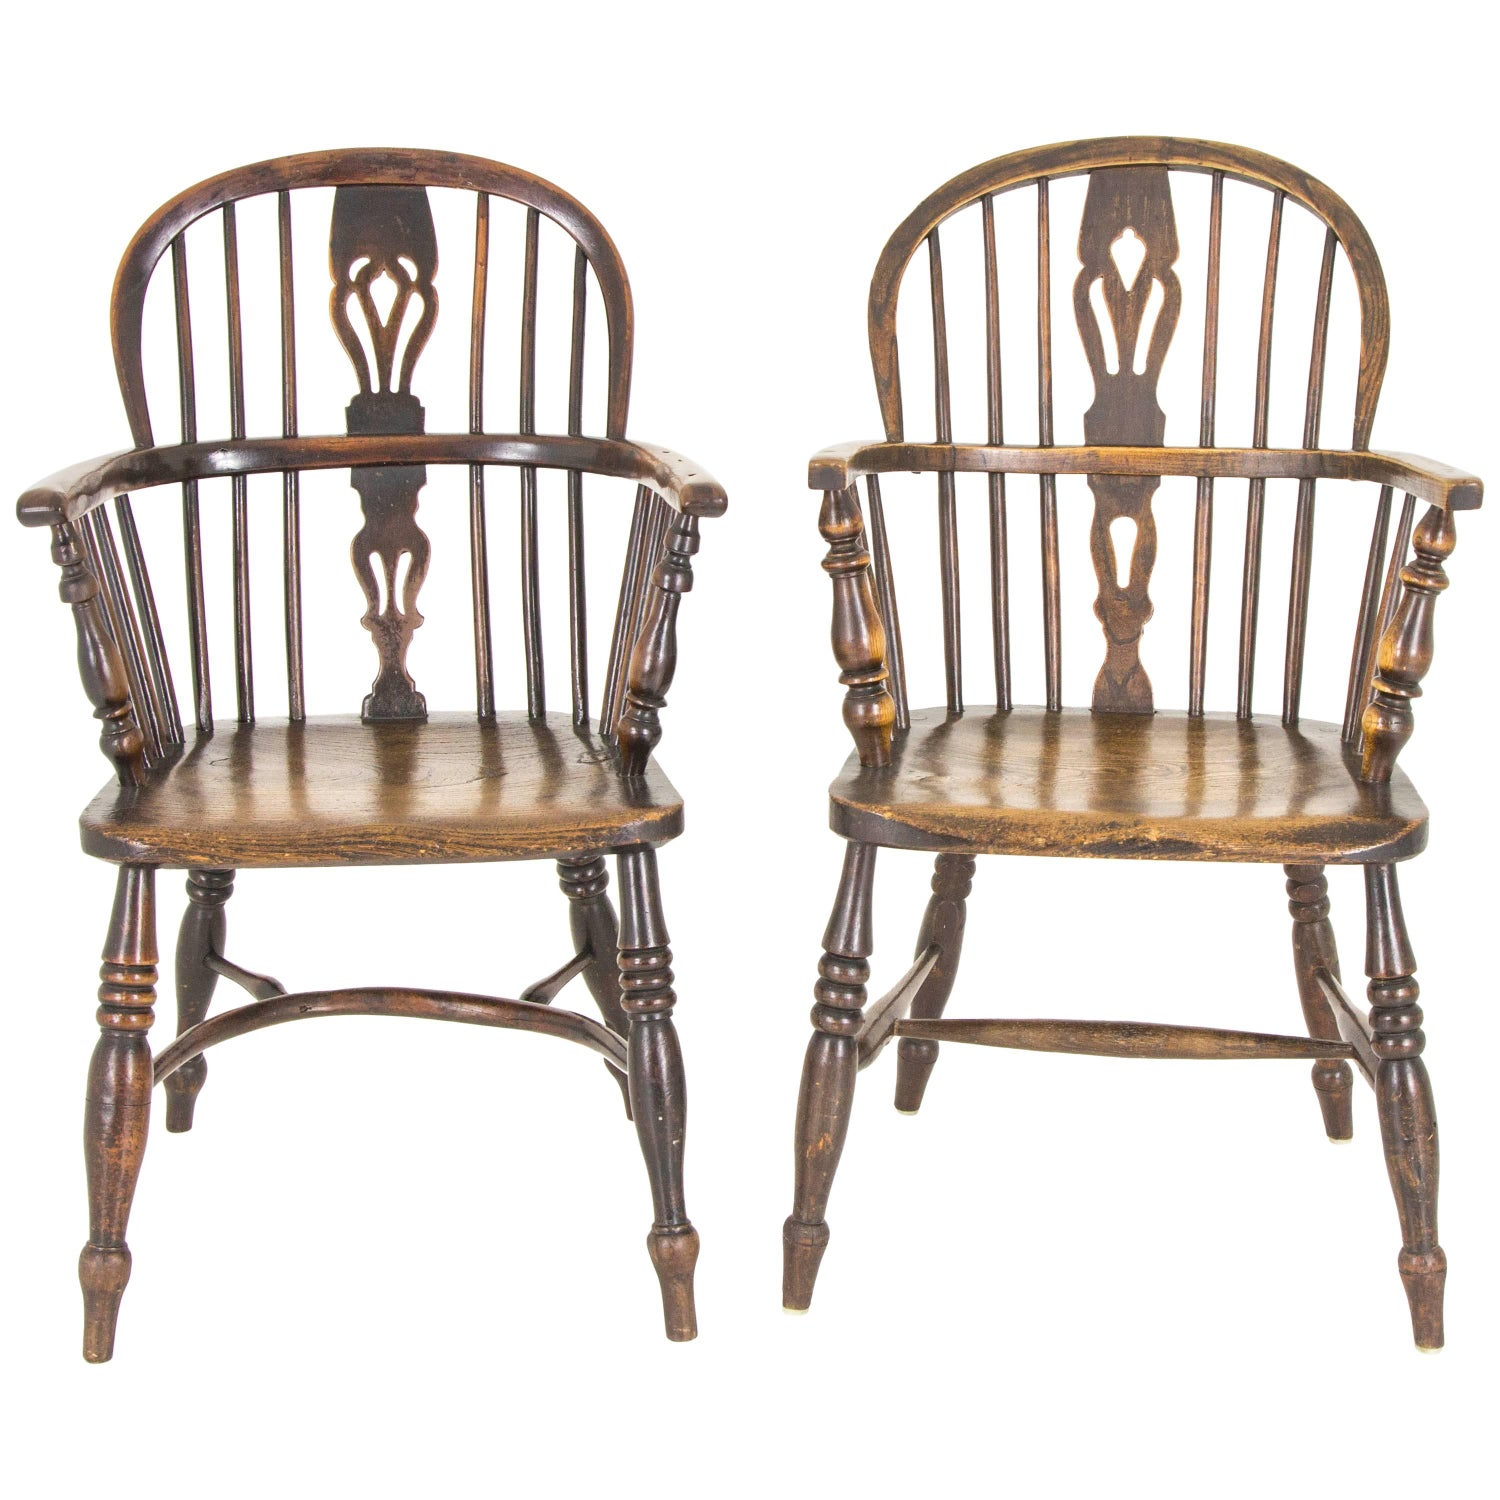 Pair of Windsor Chairs Antique Chairs High Back Chairs Scotland